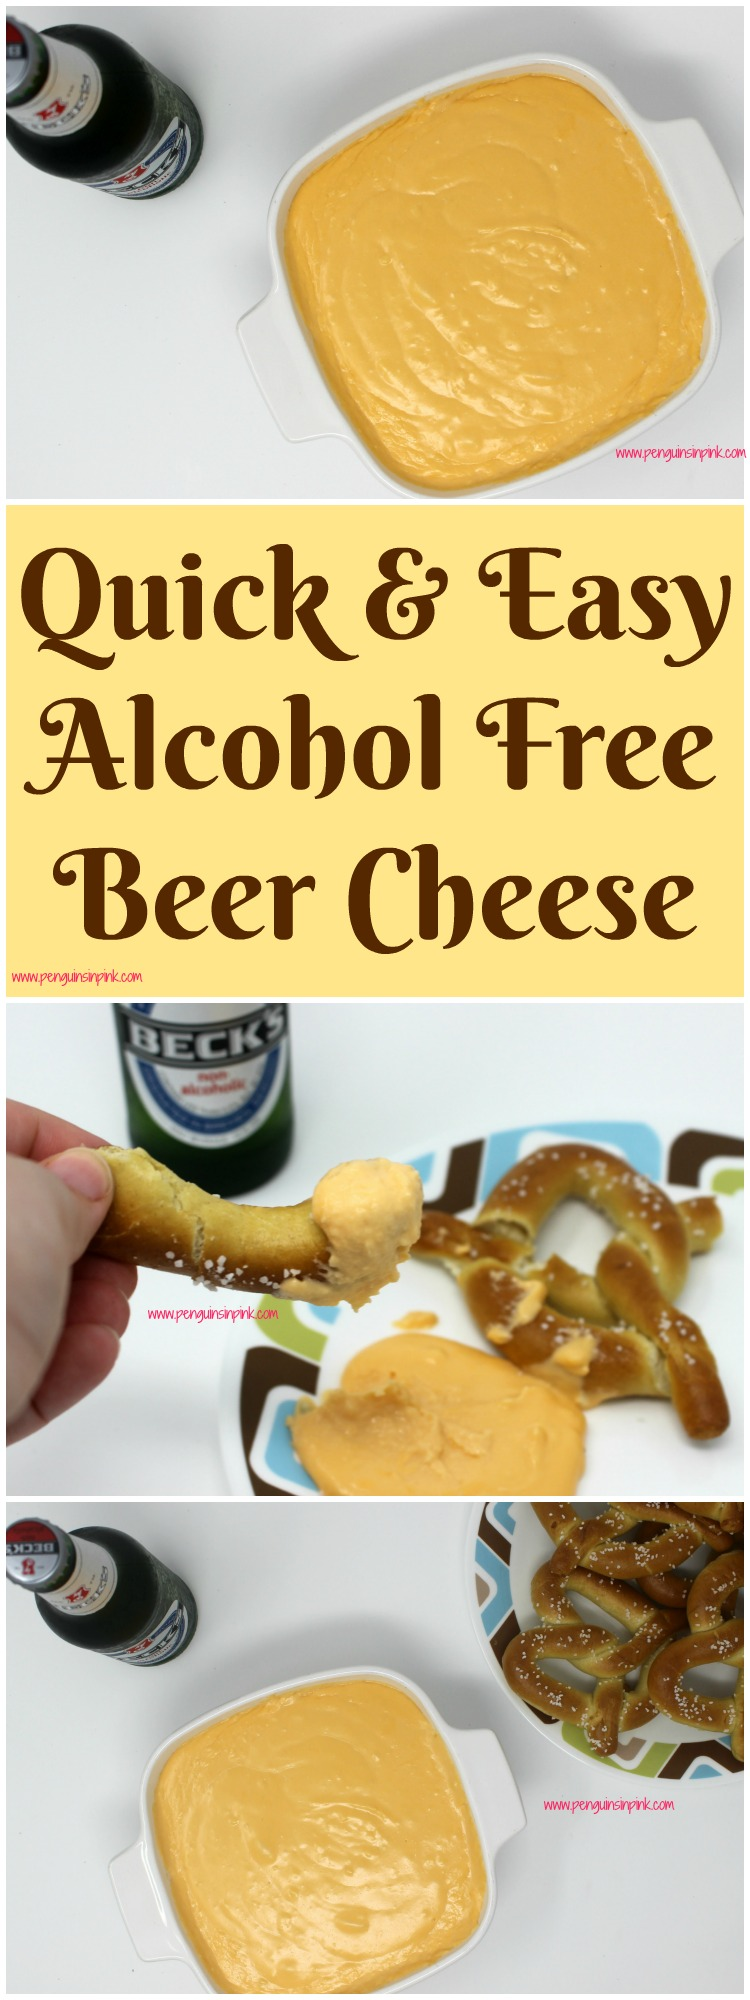 This alcohol free beer cheese is an almost effortless, mouthwatering, three cheese appetizer. Perfect for dipping with pretzels and celebrating Oktoberfest!